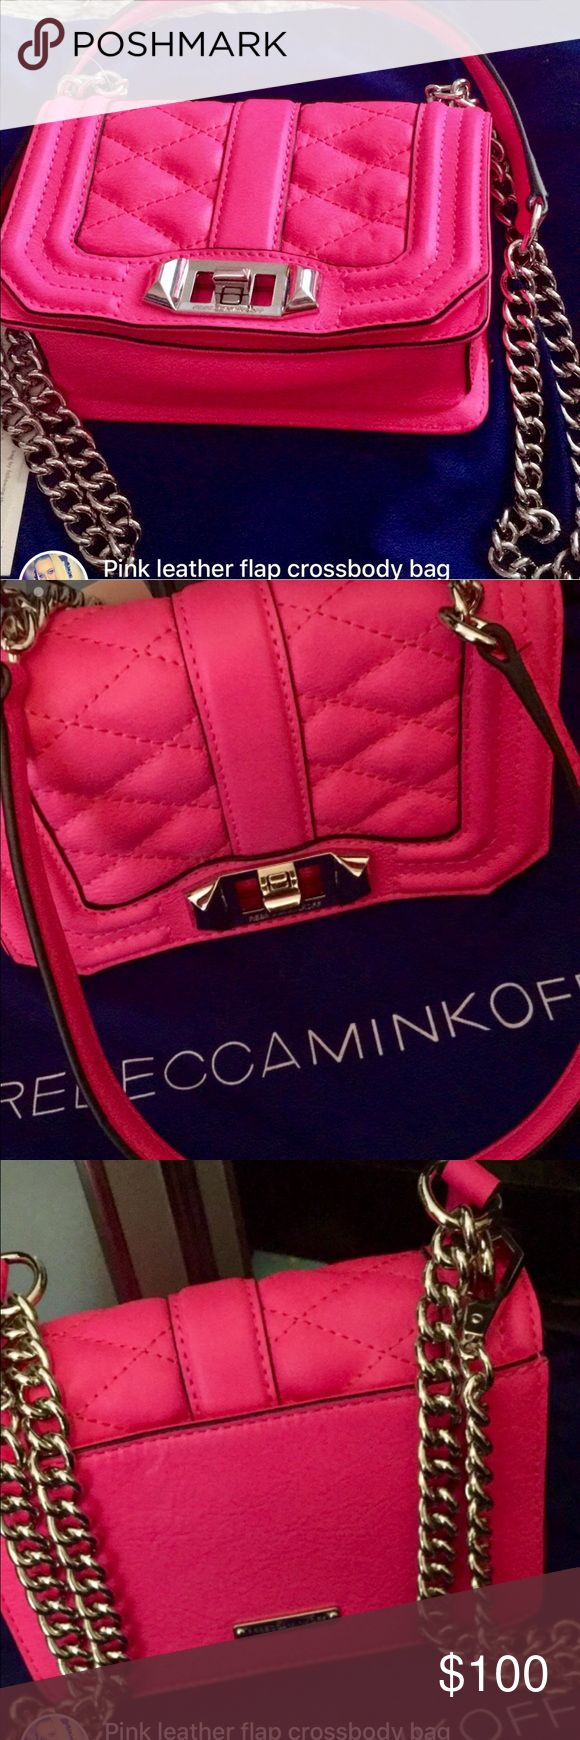 Rebecca Minkoff crossbody purse Never used. Brand new. Hot pink Rebecca Minkoff crossbody purse. Great condition. Originally $200. It also comes with a blue Rebecca Minkoff bag to protect the purse. And I also have an all white one. Rebecca Minkoff Bags Crossbody Bags